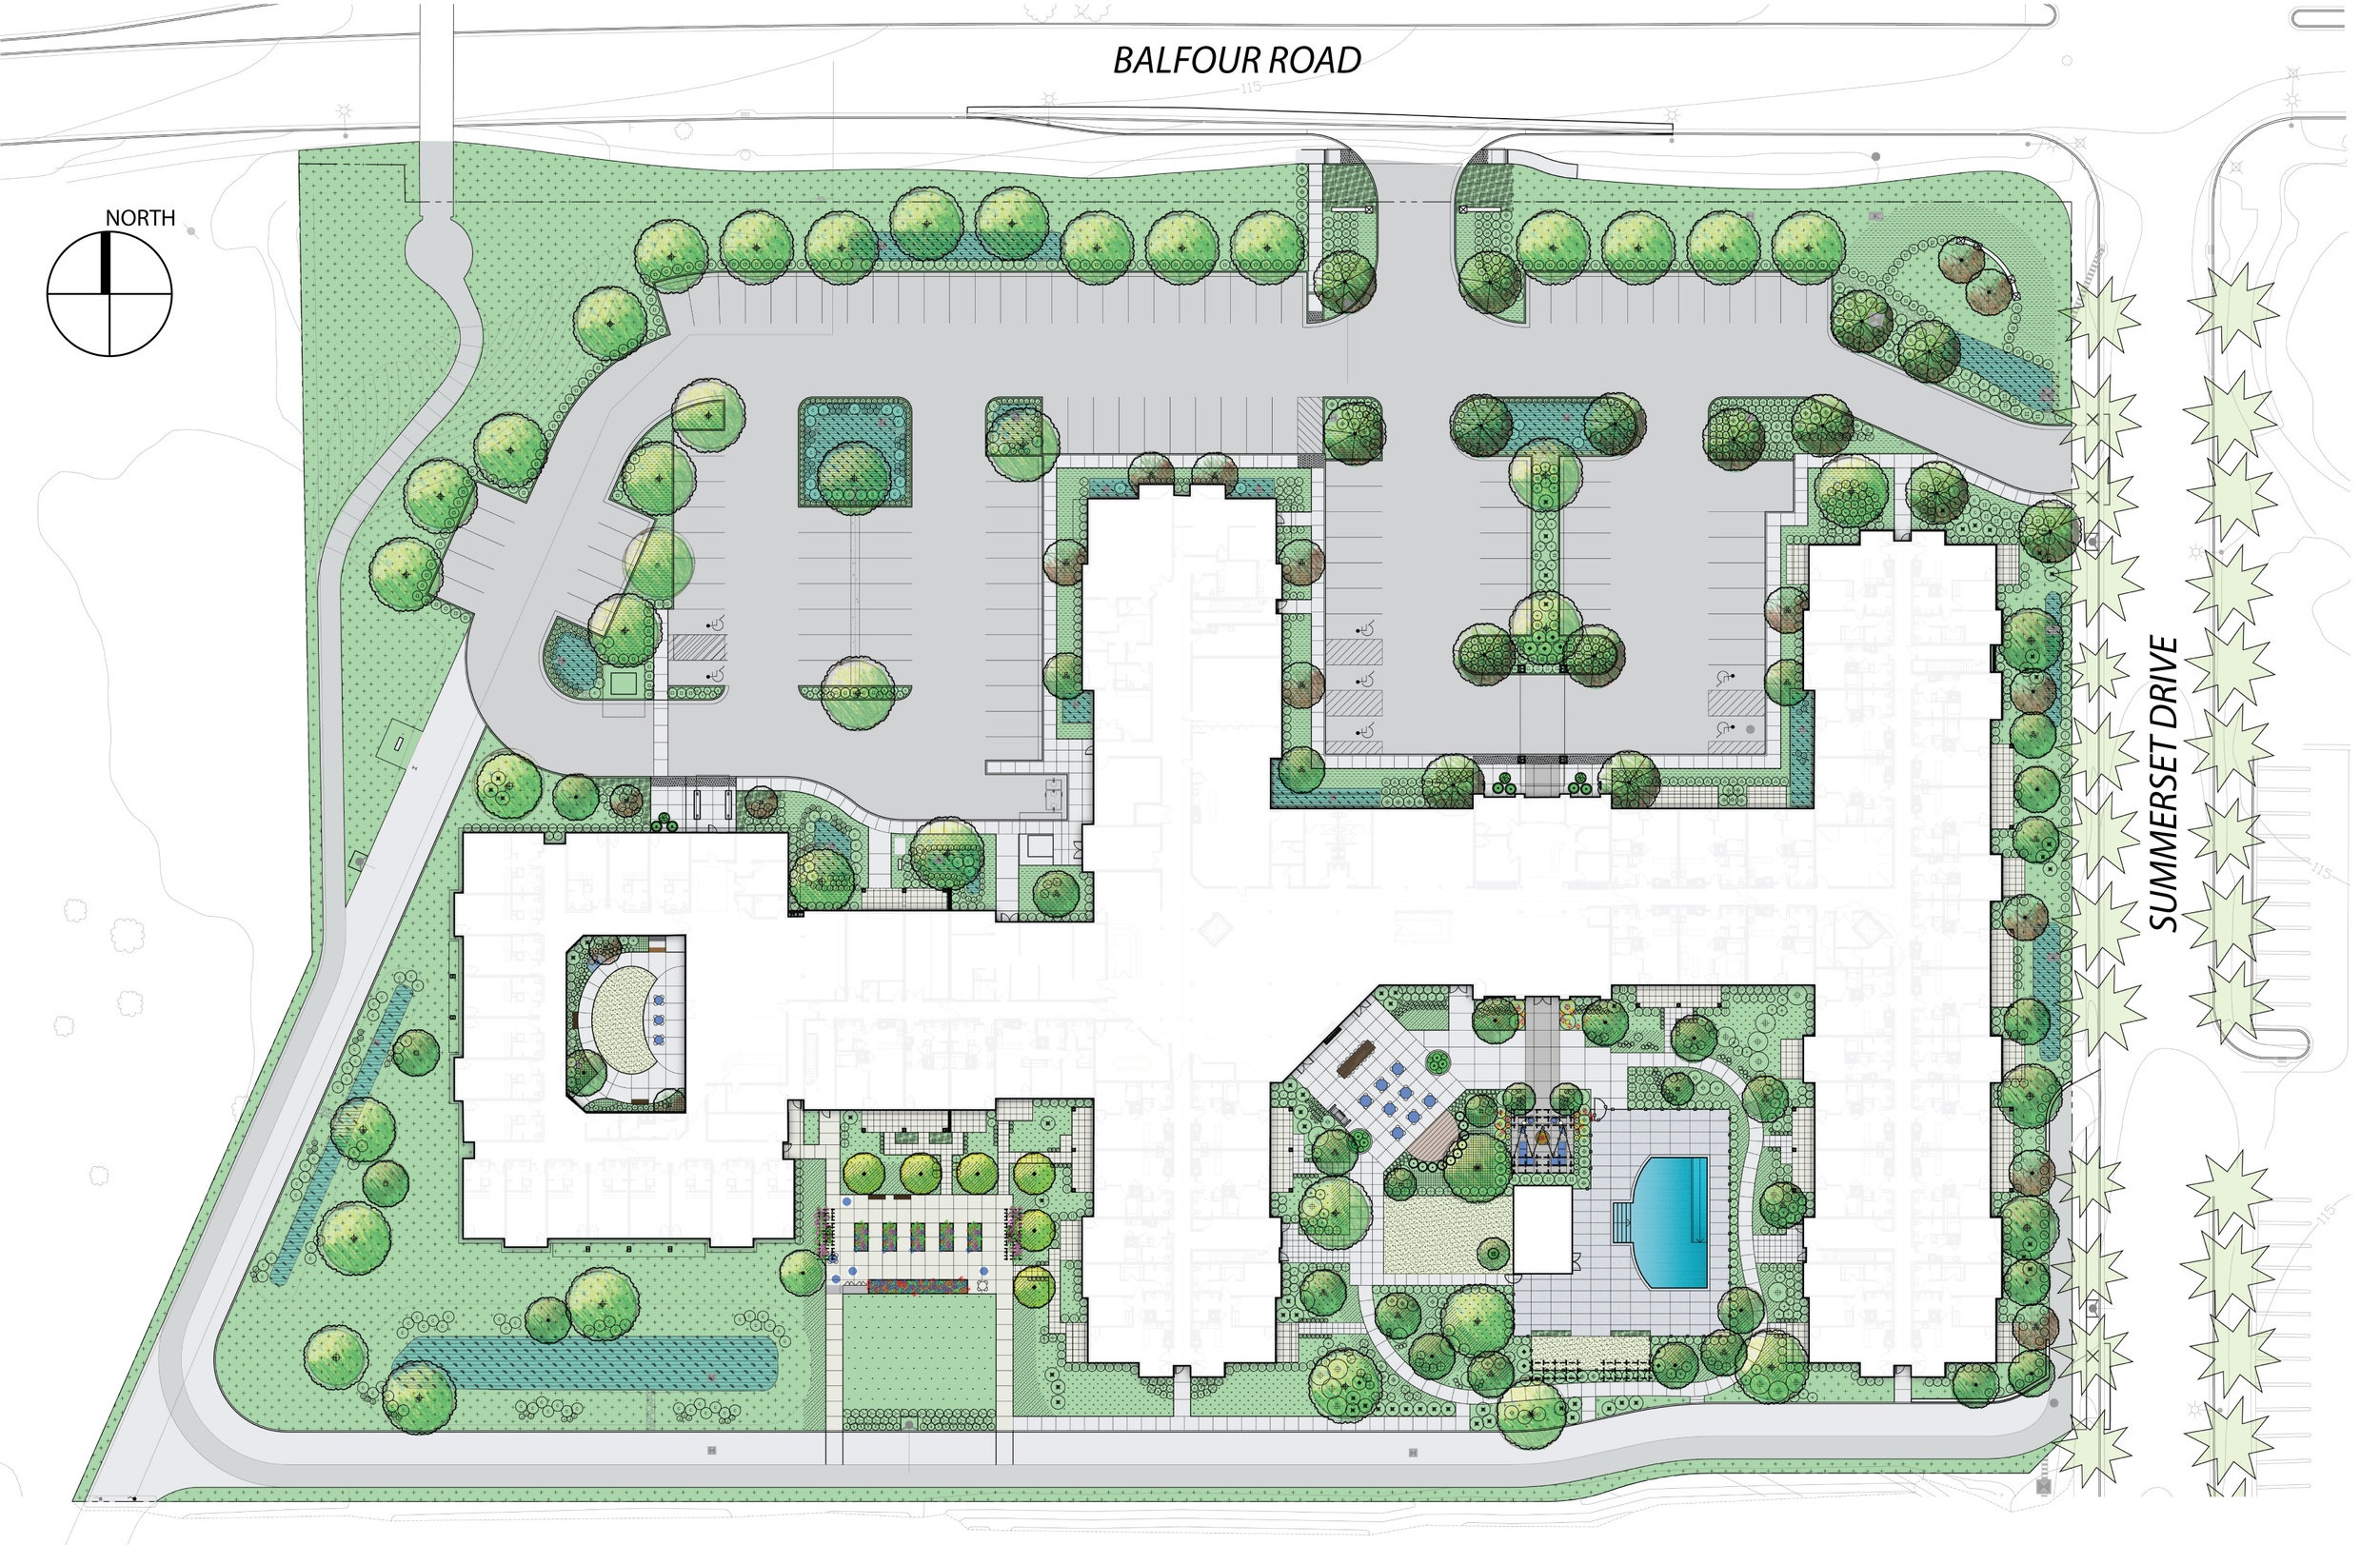 Brentwood_overall rendered plan-01 with labels.jpg